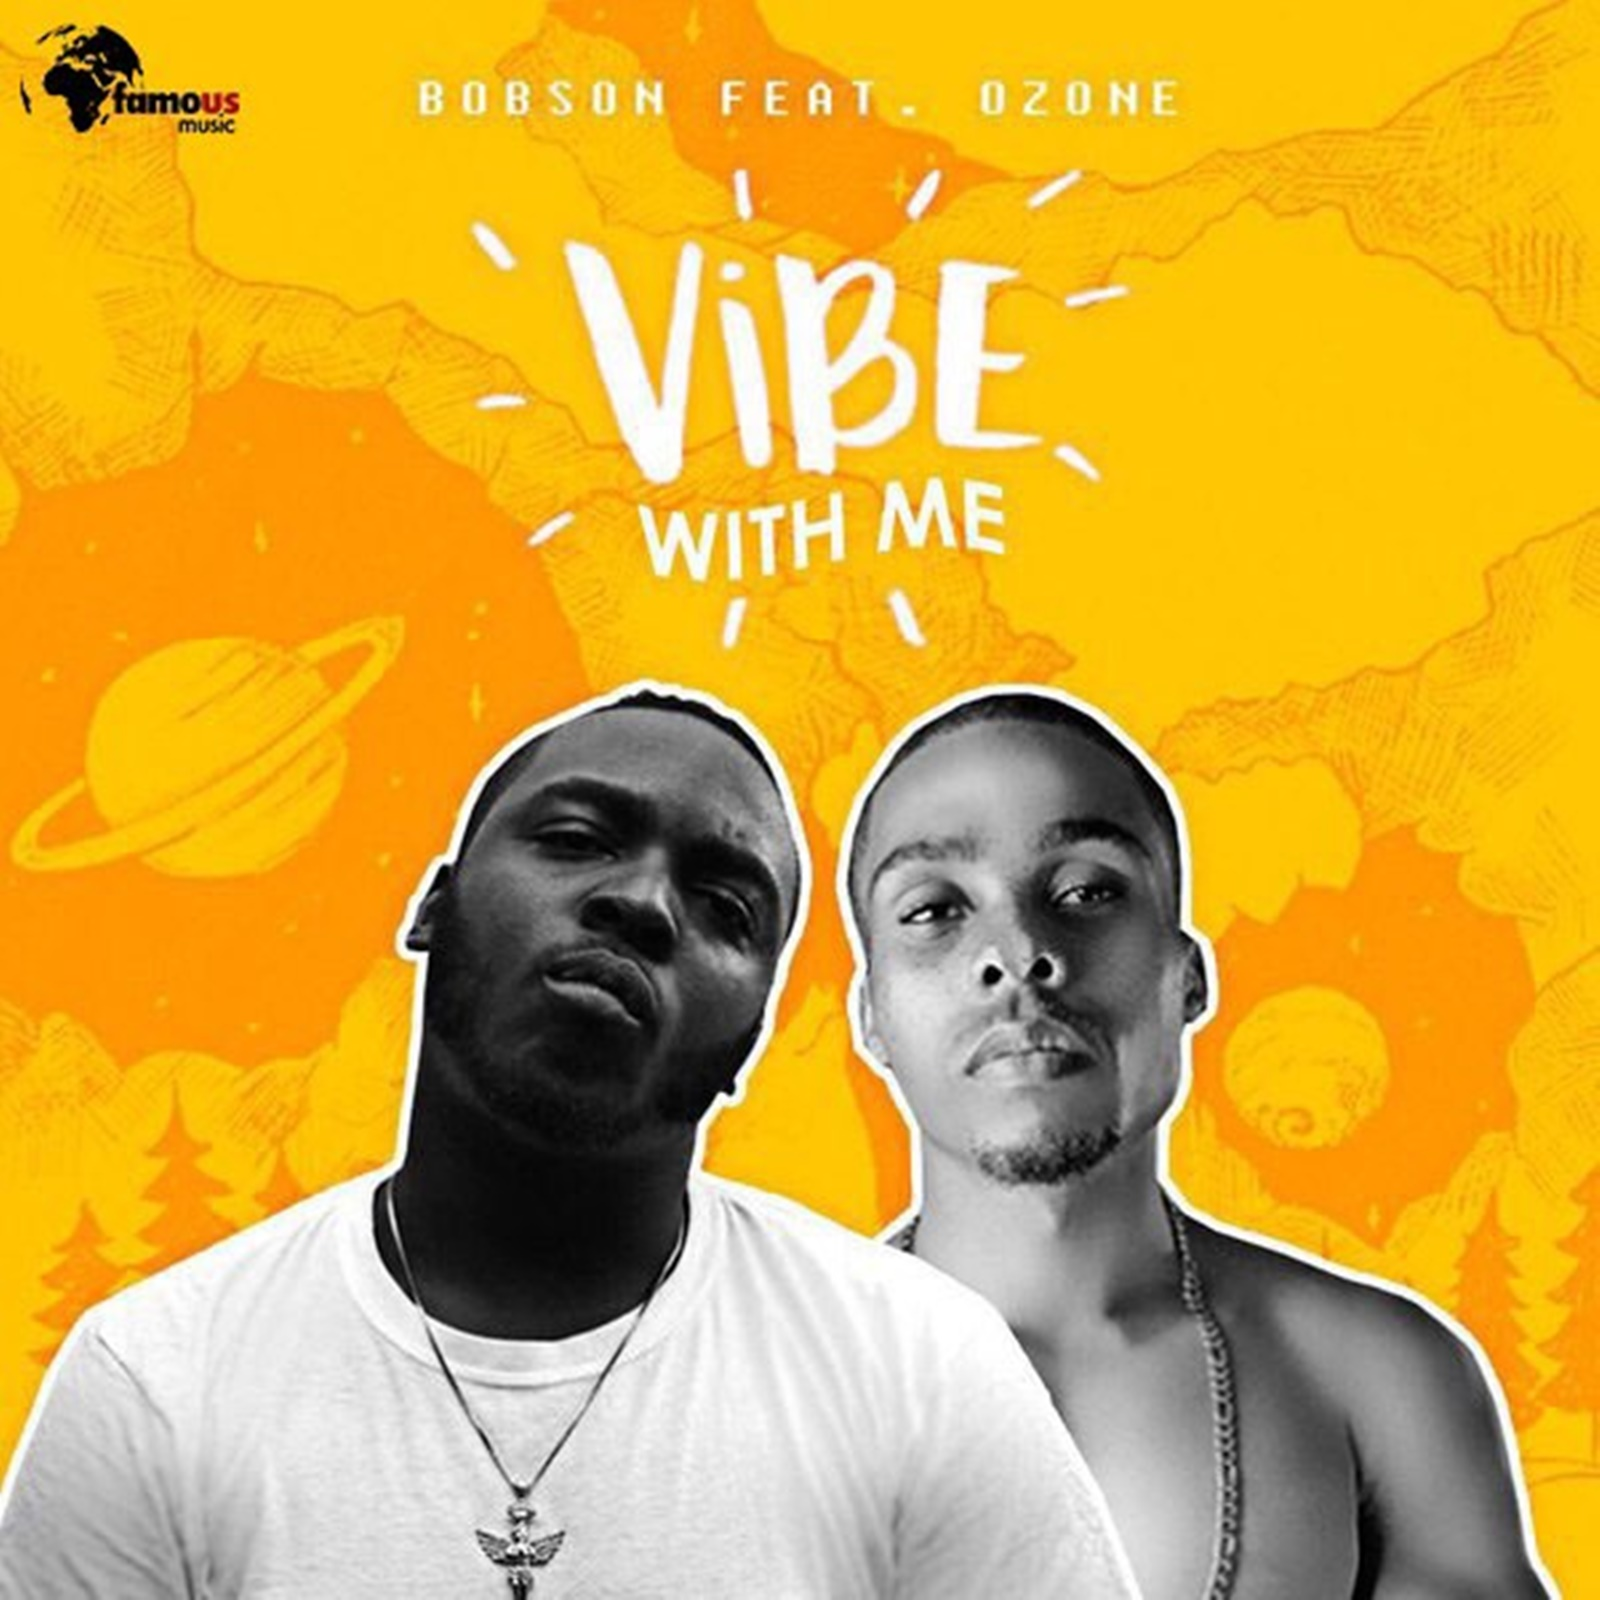 VIDEO: Bobson ft. Ozone – Vibe With Me